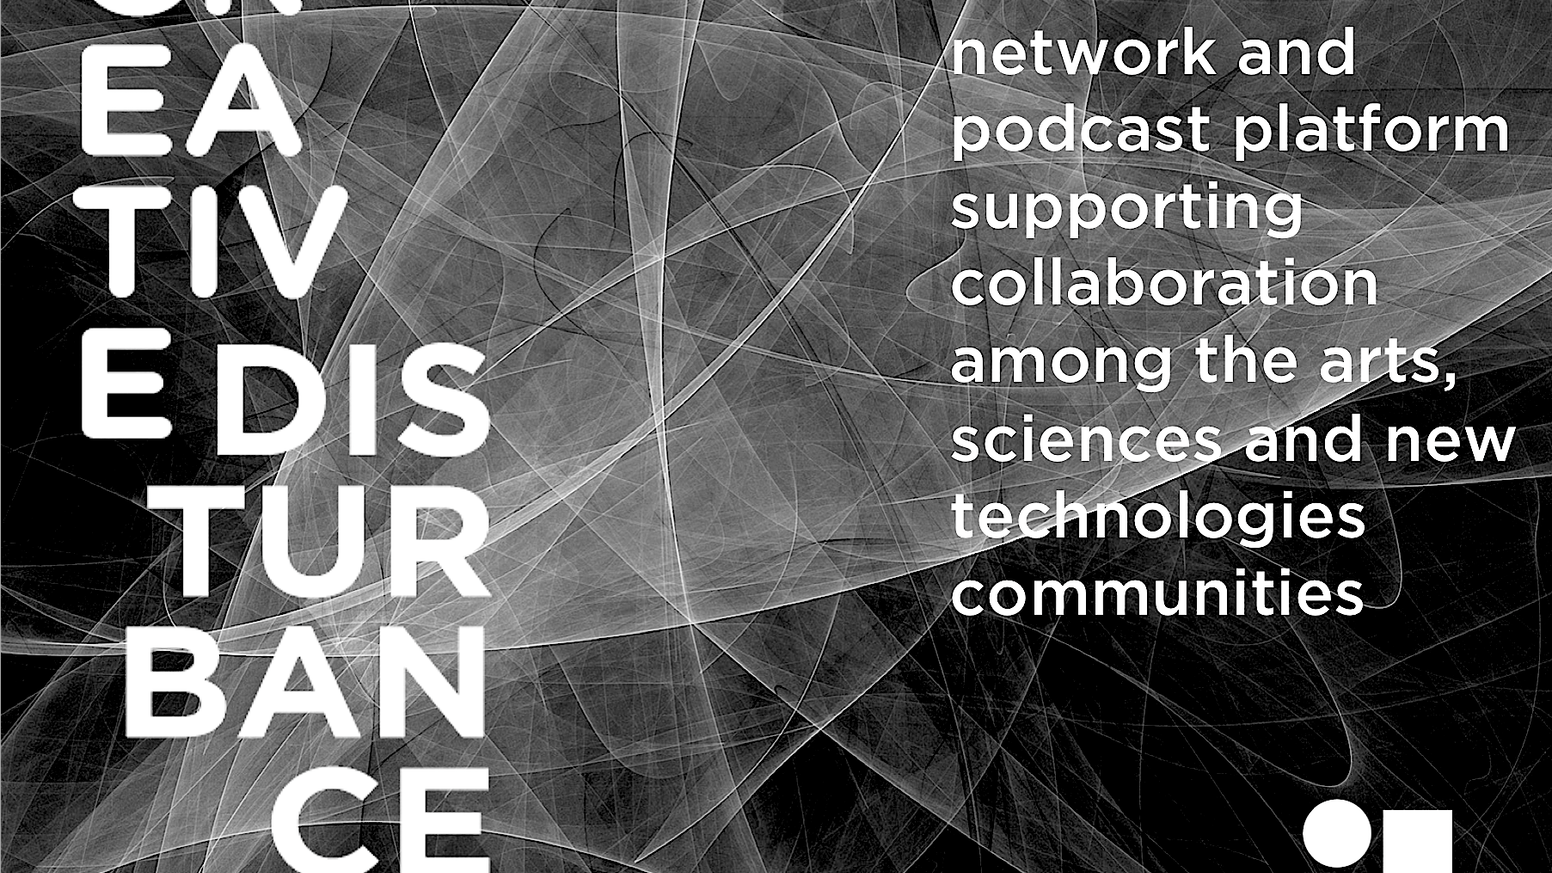 Creative Disturbance is an international platform supporting collaboration among the arts, sciences, and new technologies communities.